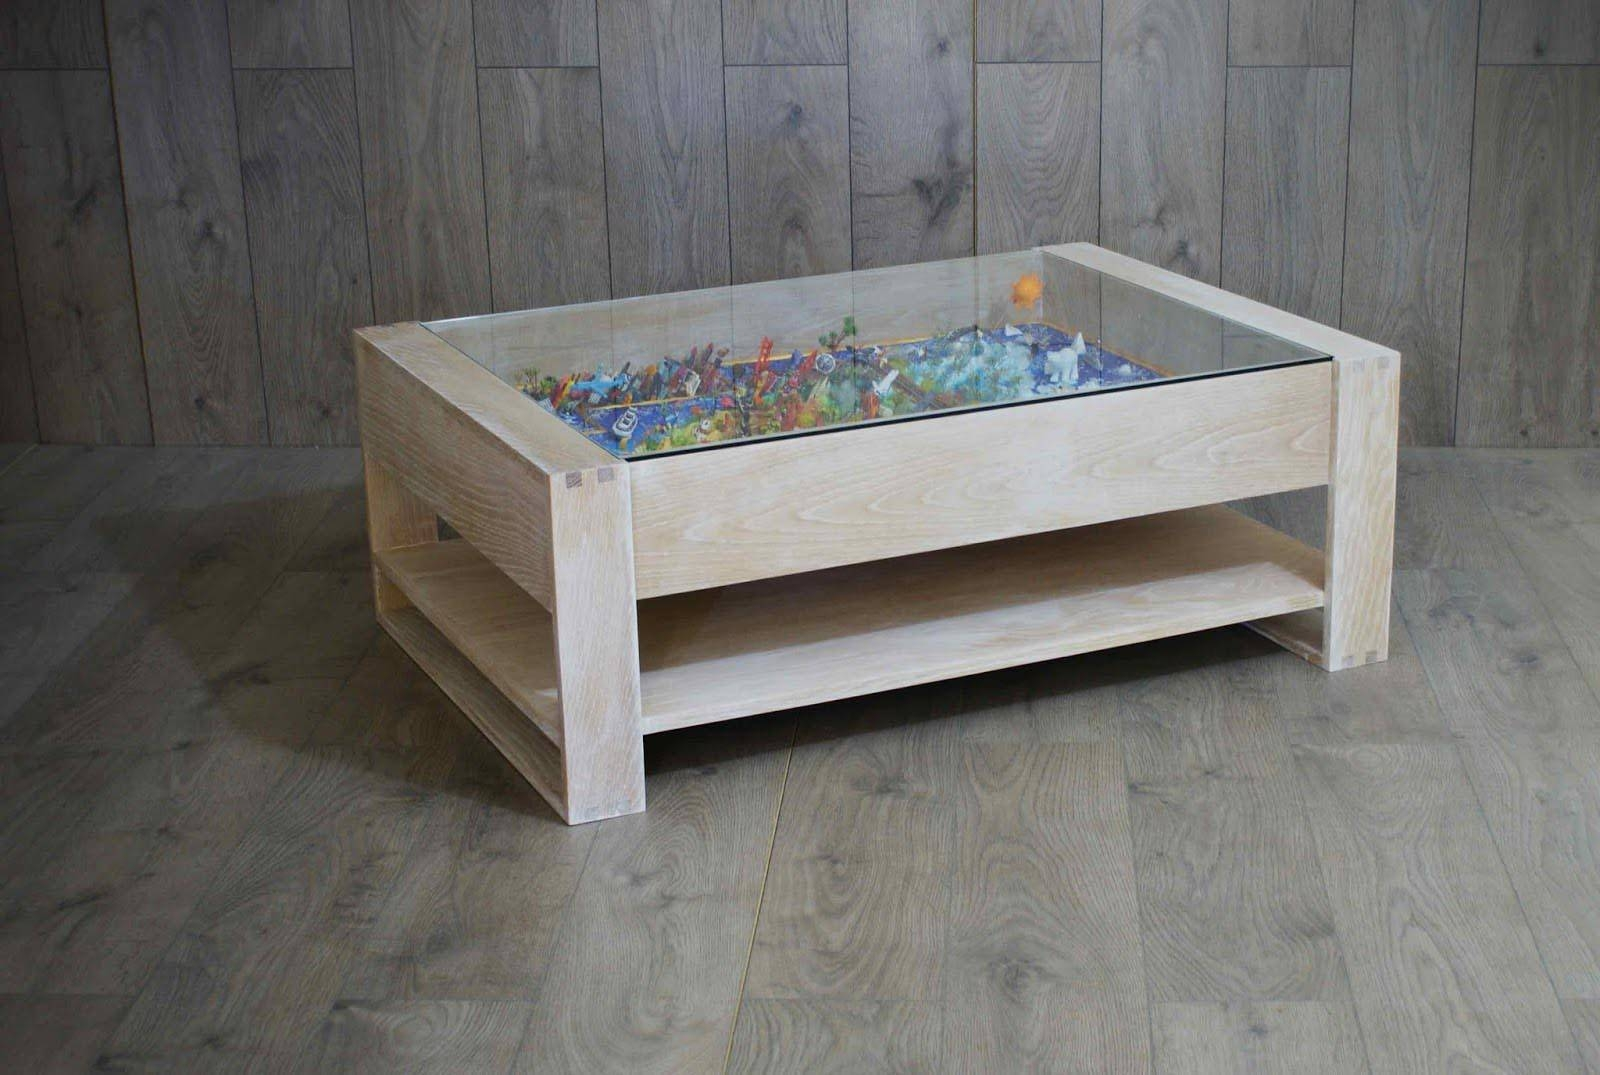 Coffee Table Glass Top Display Drawer | Coffee Table Design Ideas Pertaining To Coffee Tables With Glass Top Display Drawer (View 9 of 30)